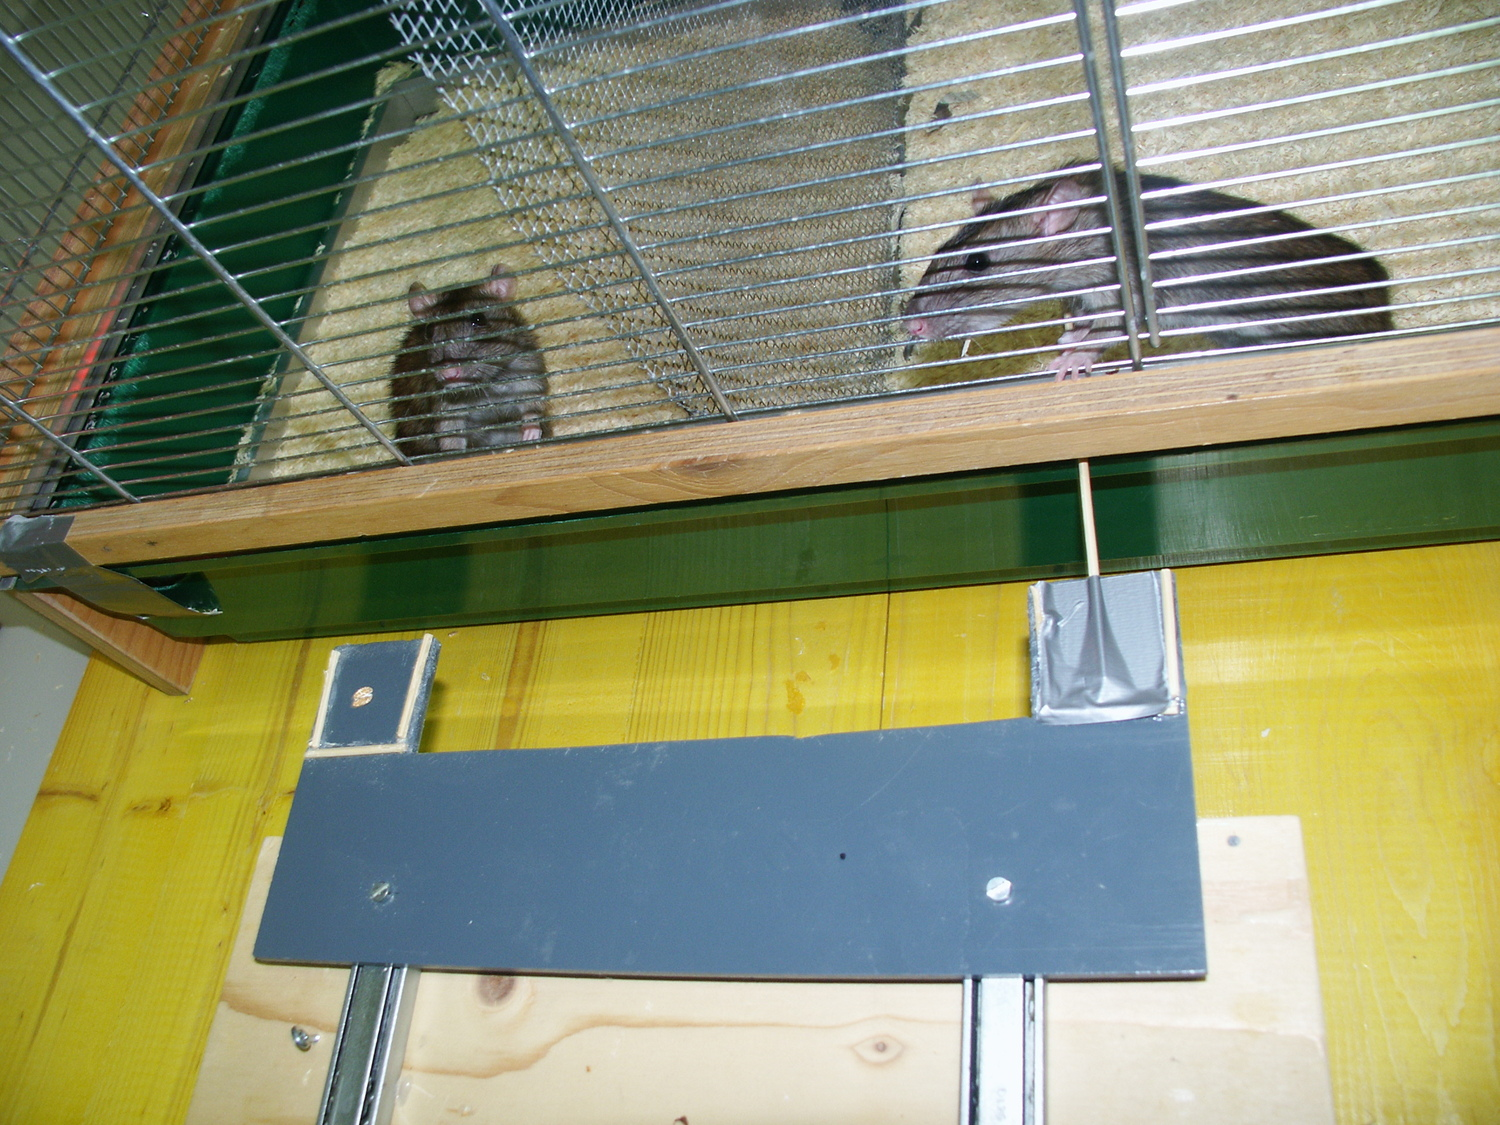 One rat (on the right) provides help by pulling the platform so the other one (on the left) can reach thetreat (an oat flake in this case). The pulling rat does not get any immediate benefit from helping - she can only hope to get a favour in return later.